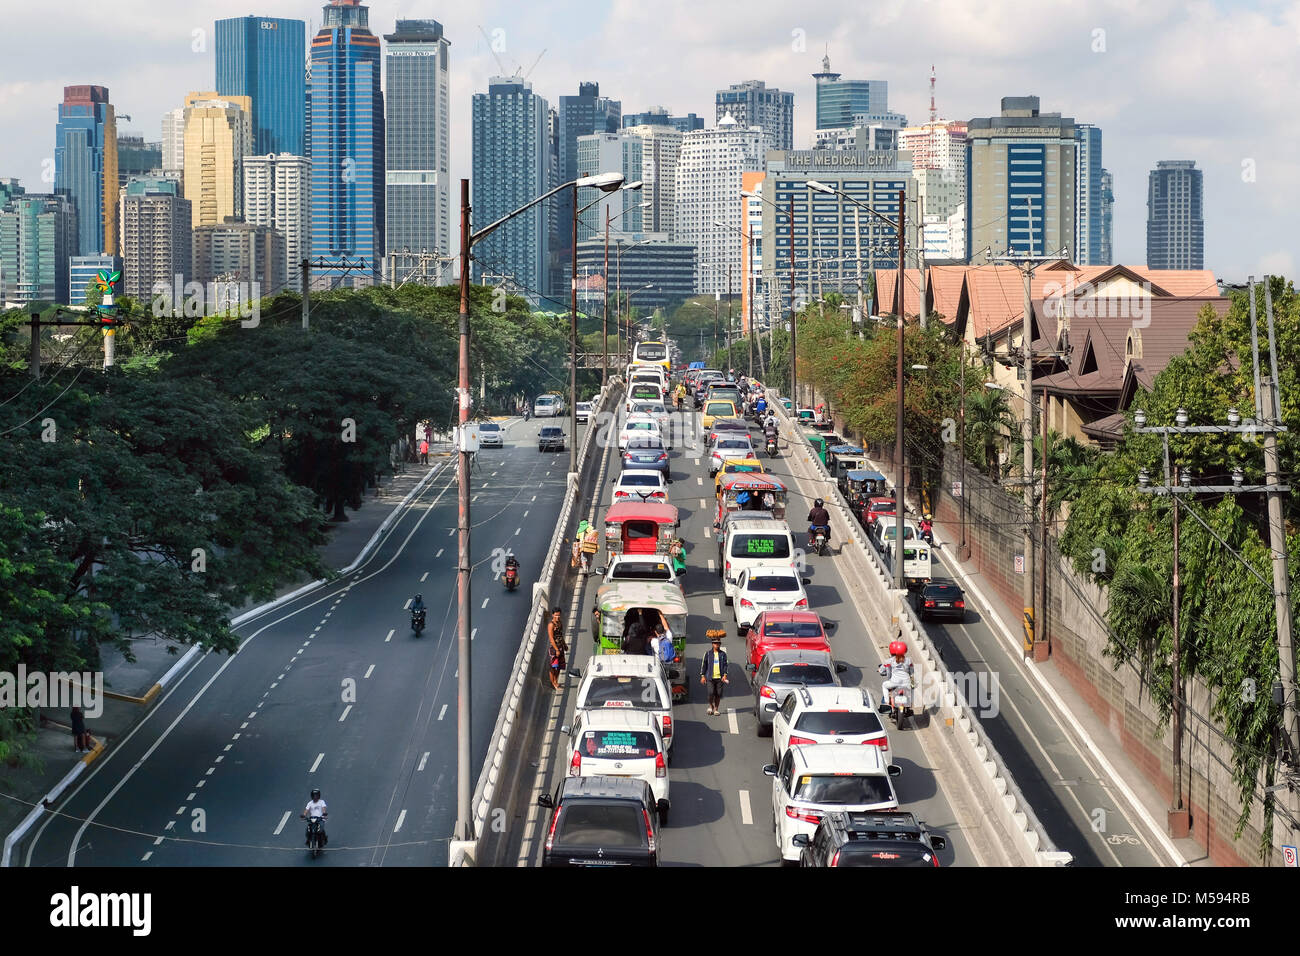 Metro Manila, in the background the skyscrapers of Pasay City, Philippines, Asia - Stock Image